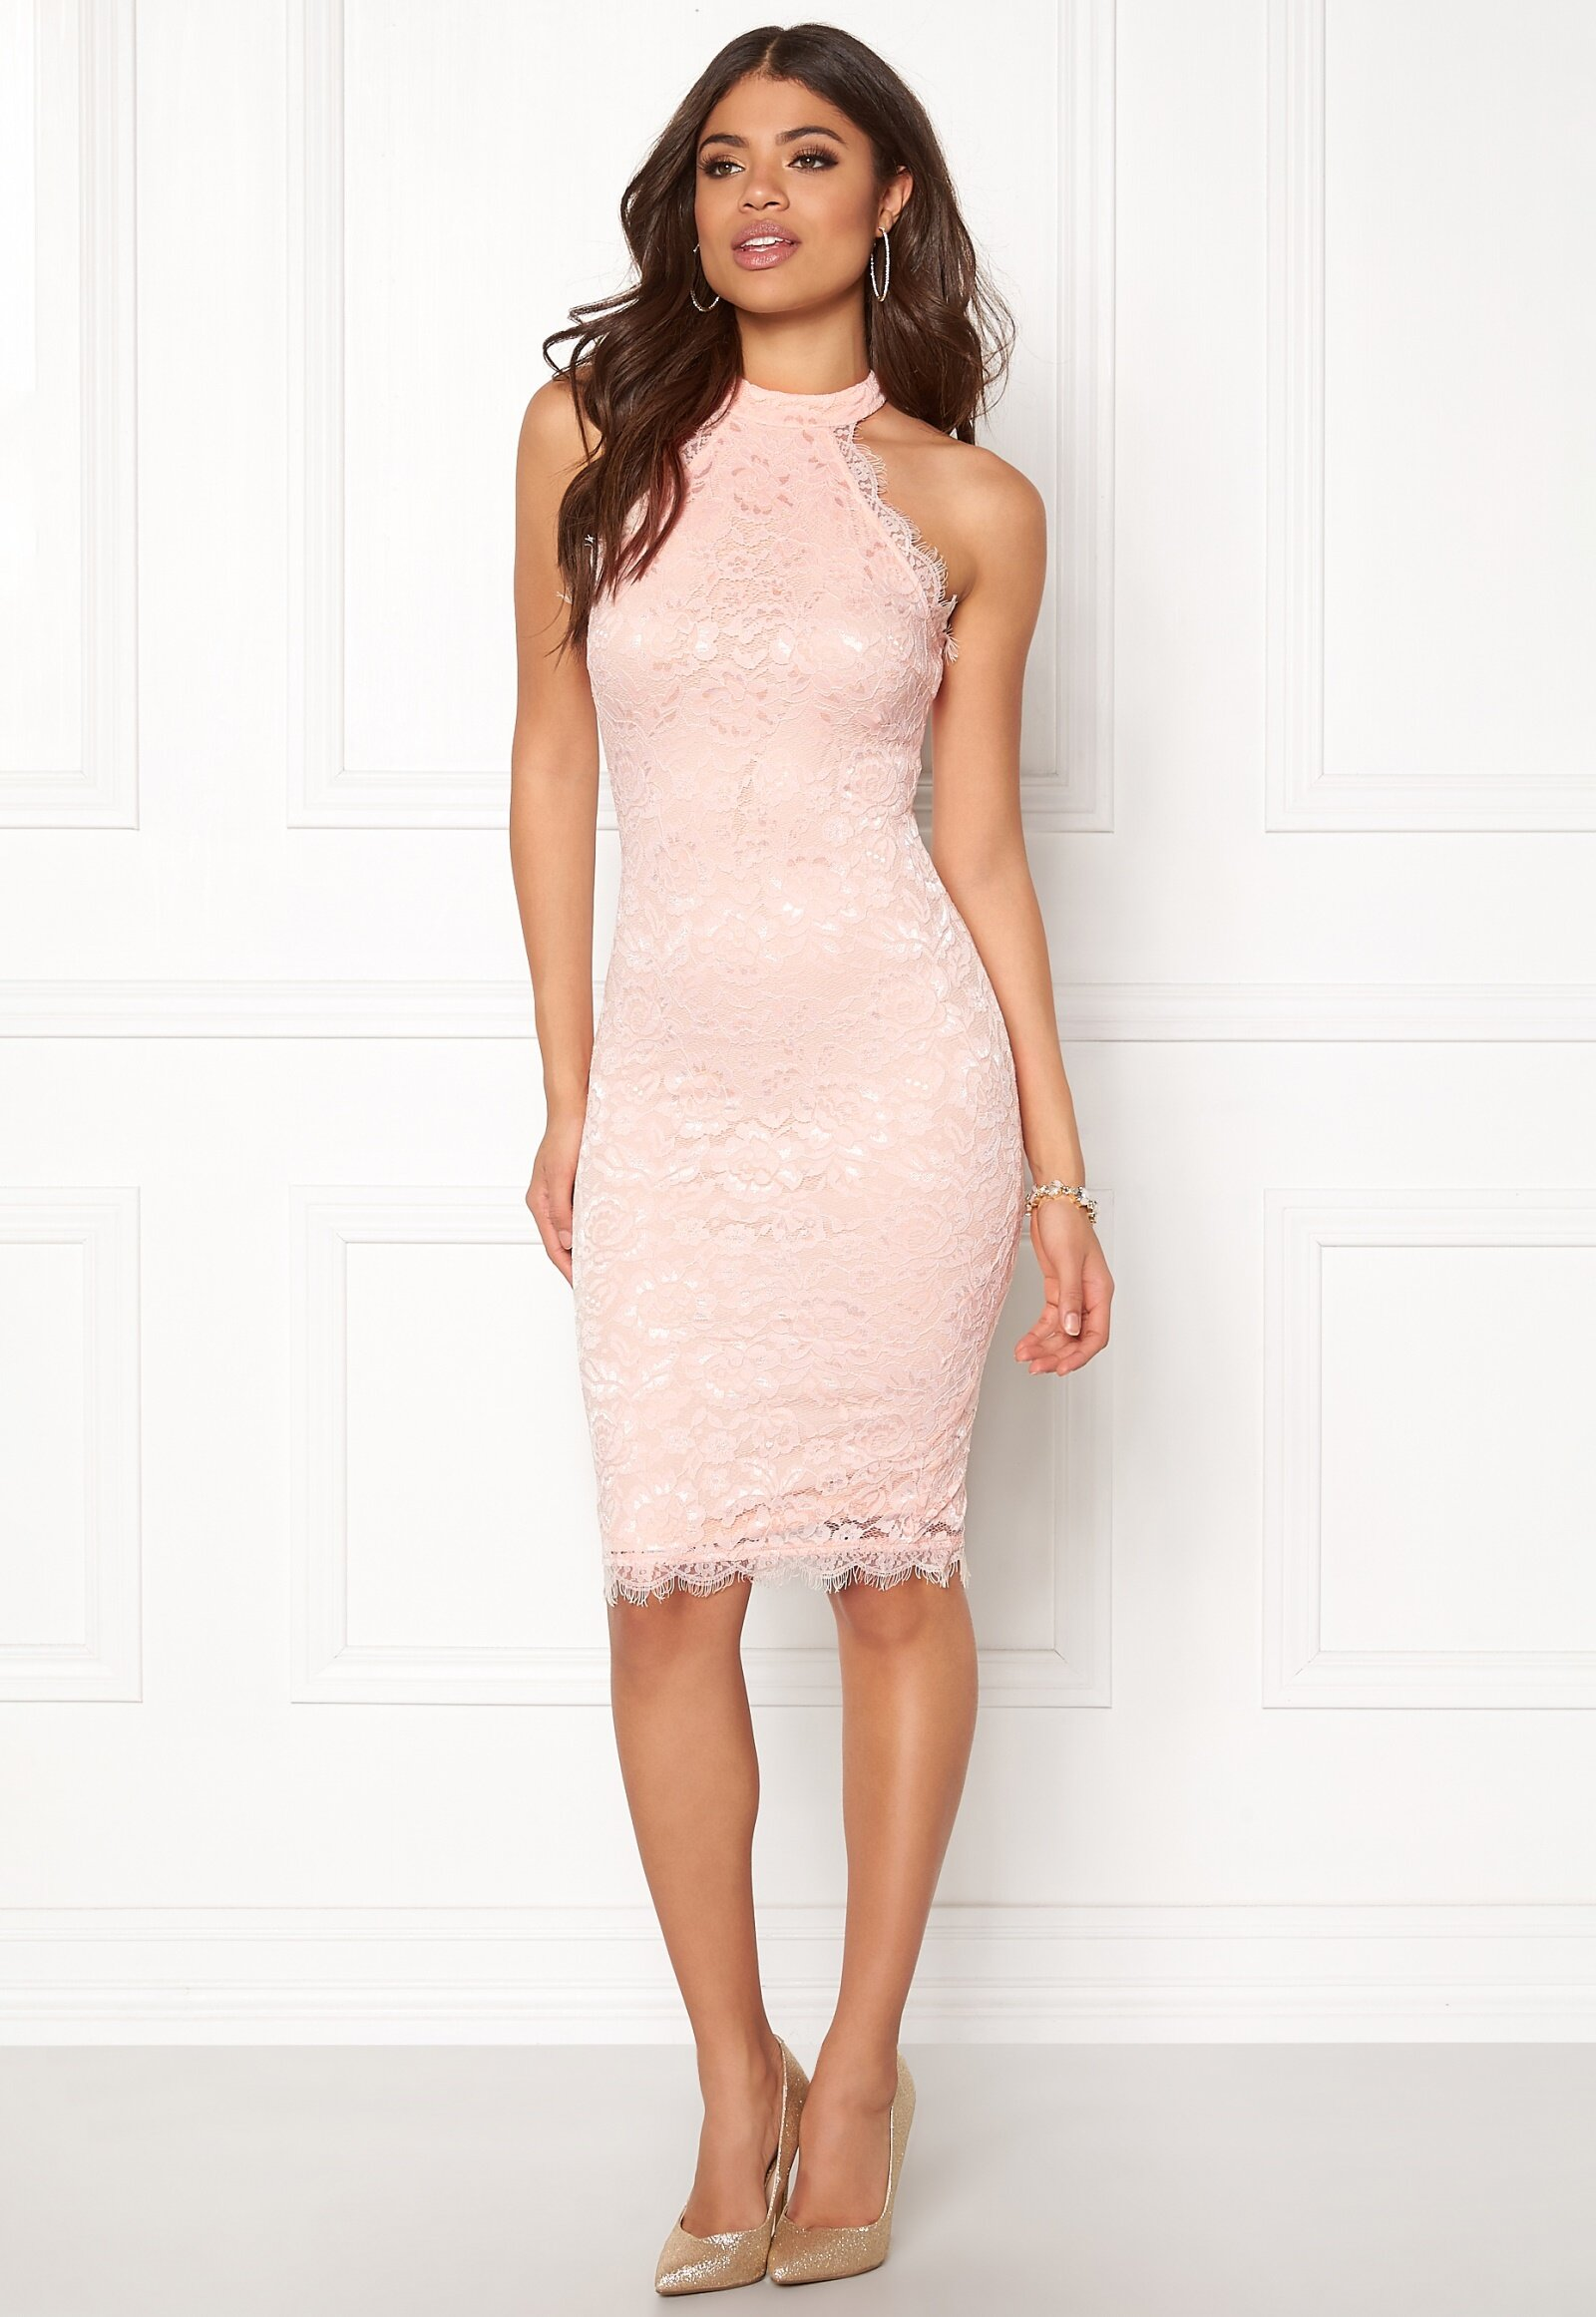 Nude Dress With Black Lace Fitted Ax Paris For Sale in